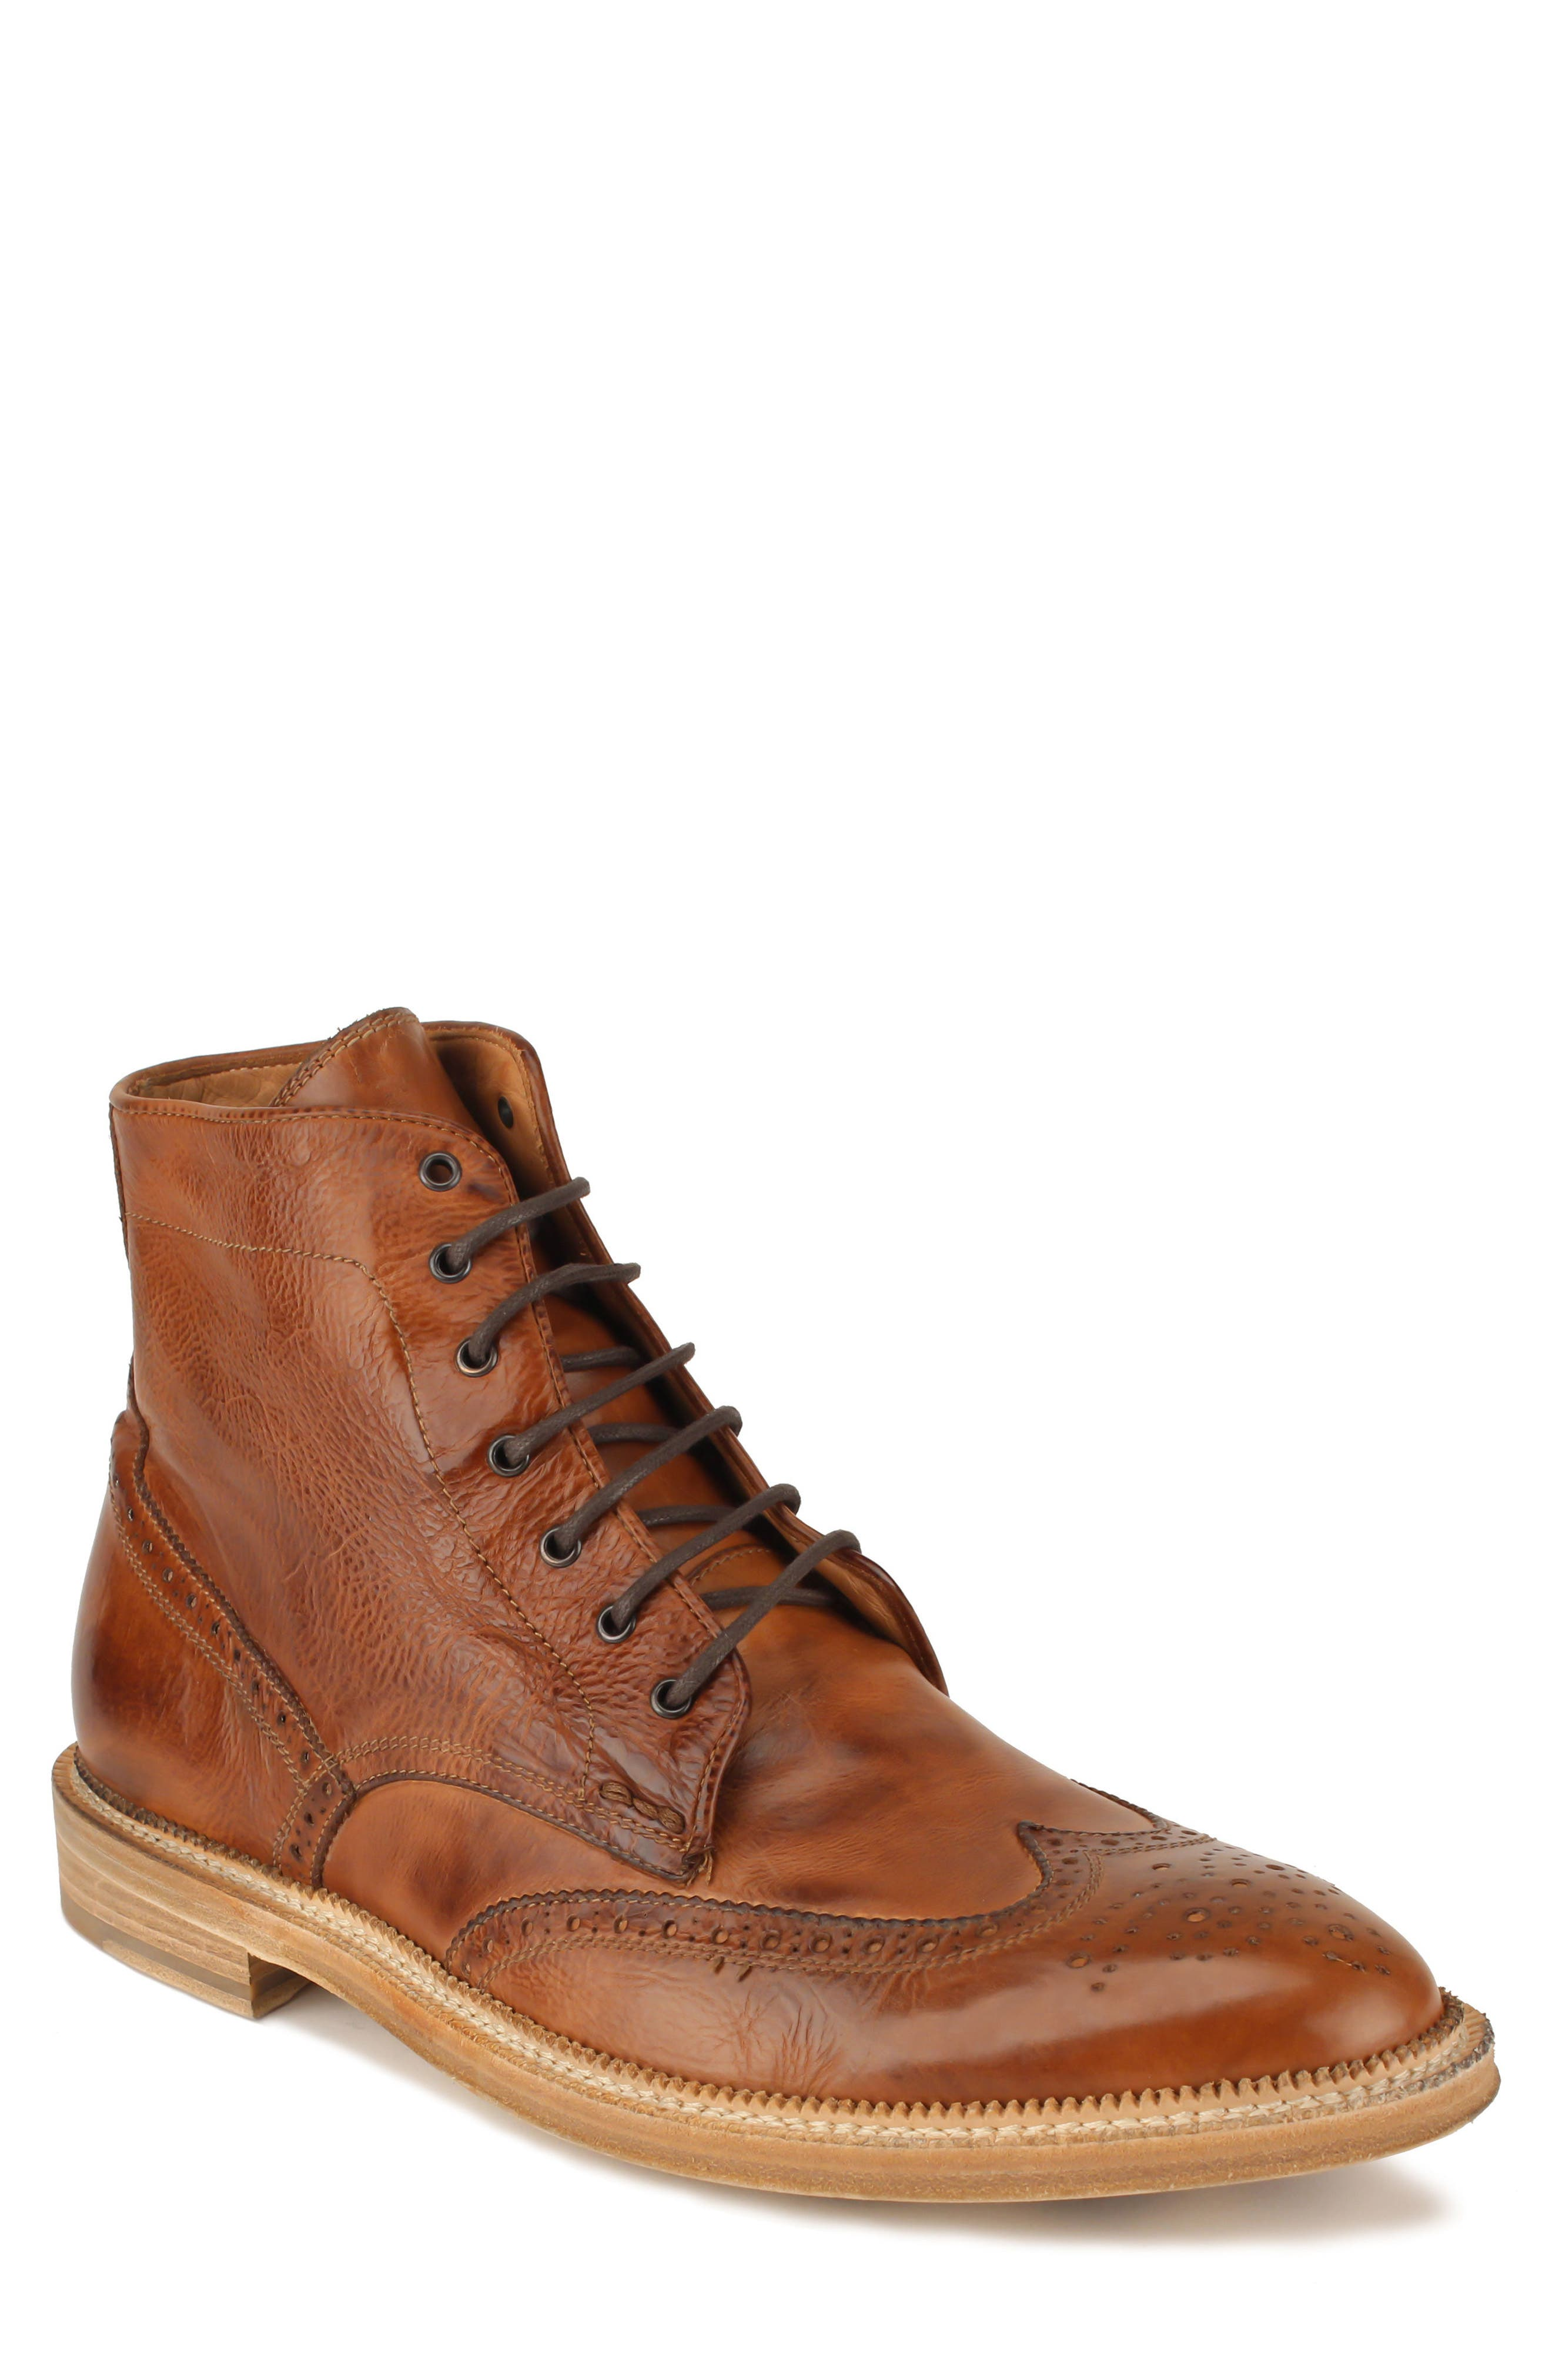 Main Image - Gordon Rush Max Wingtip Boot (Men)